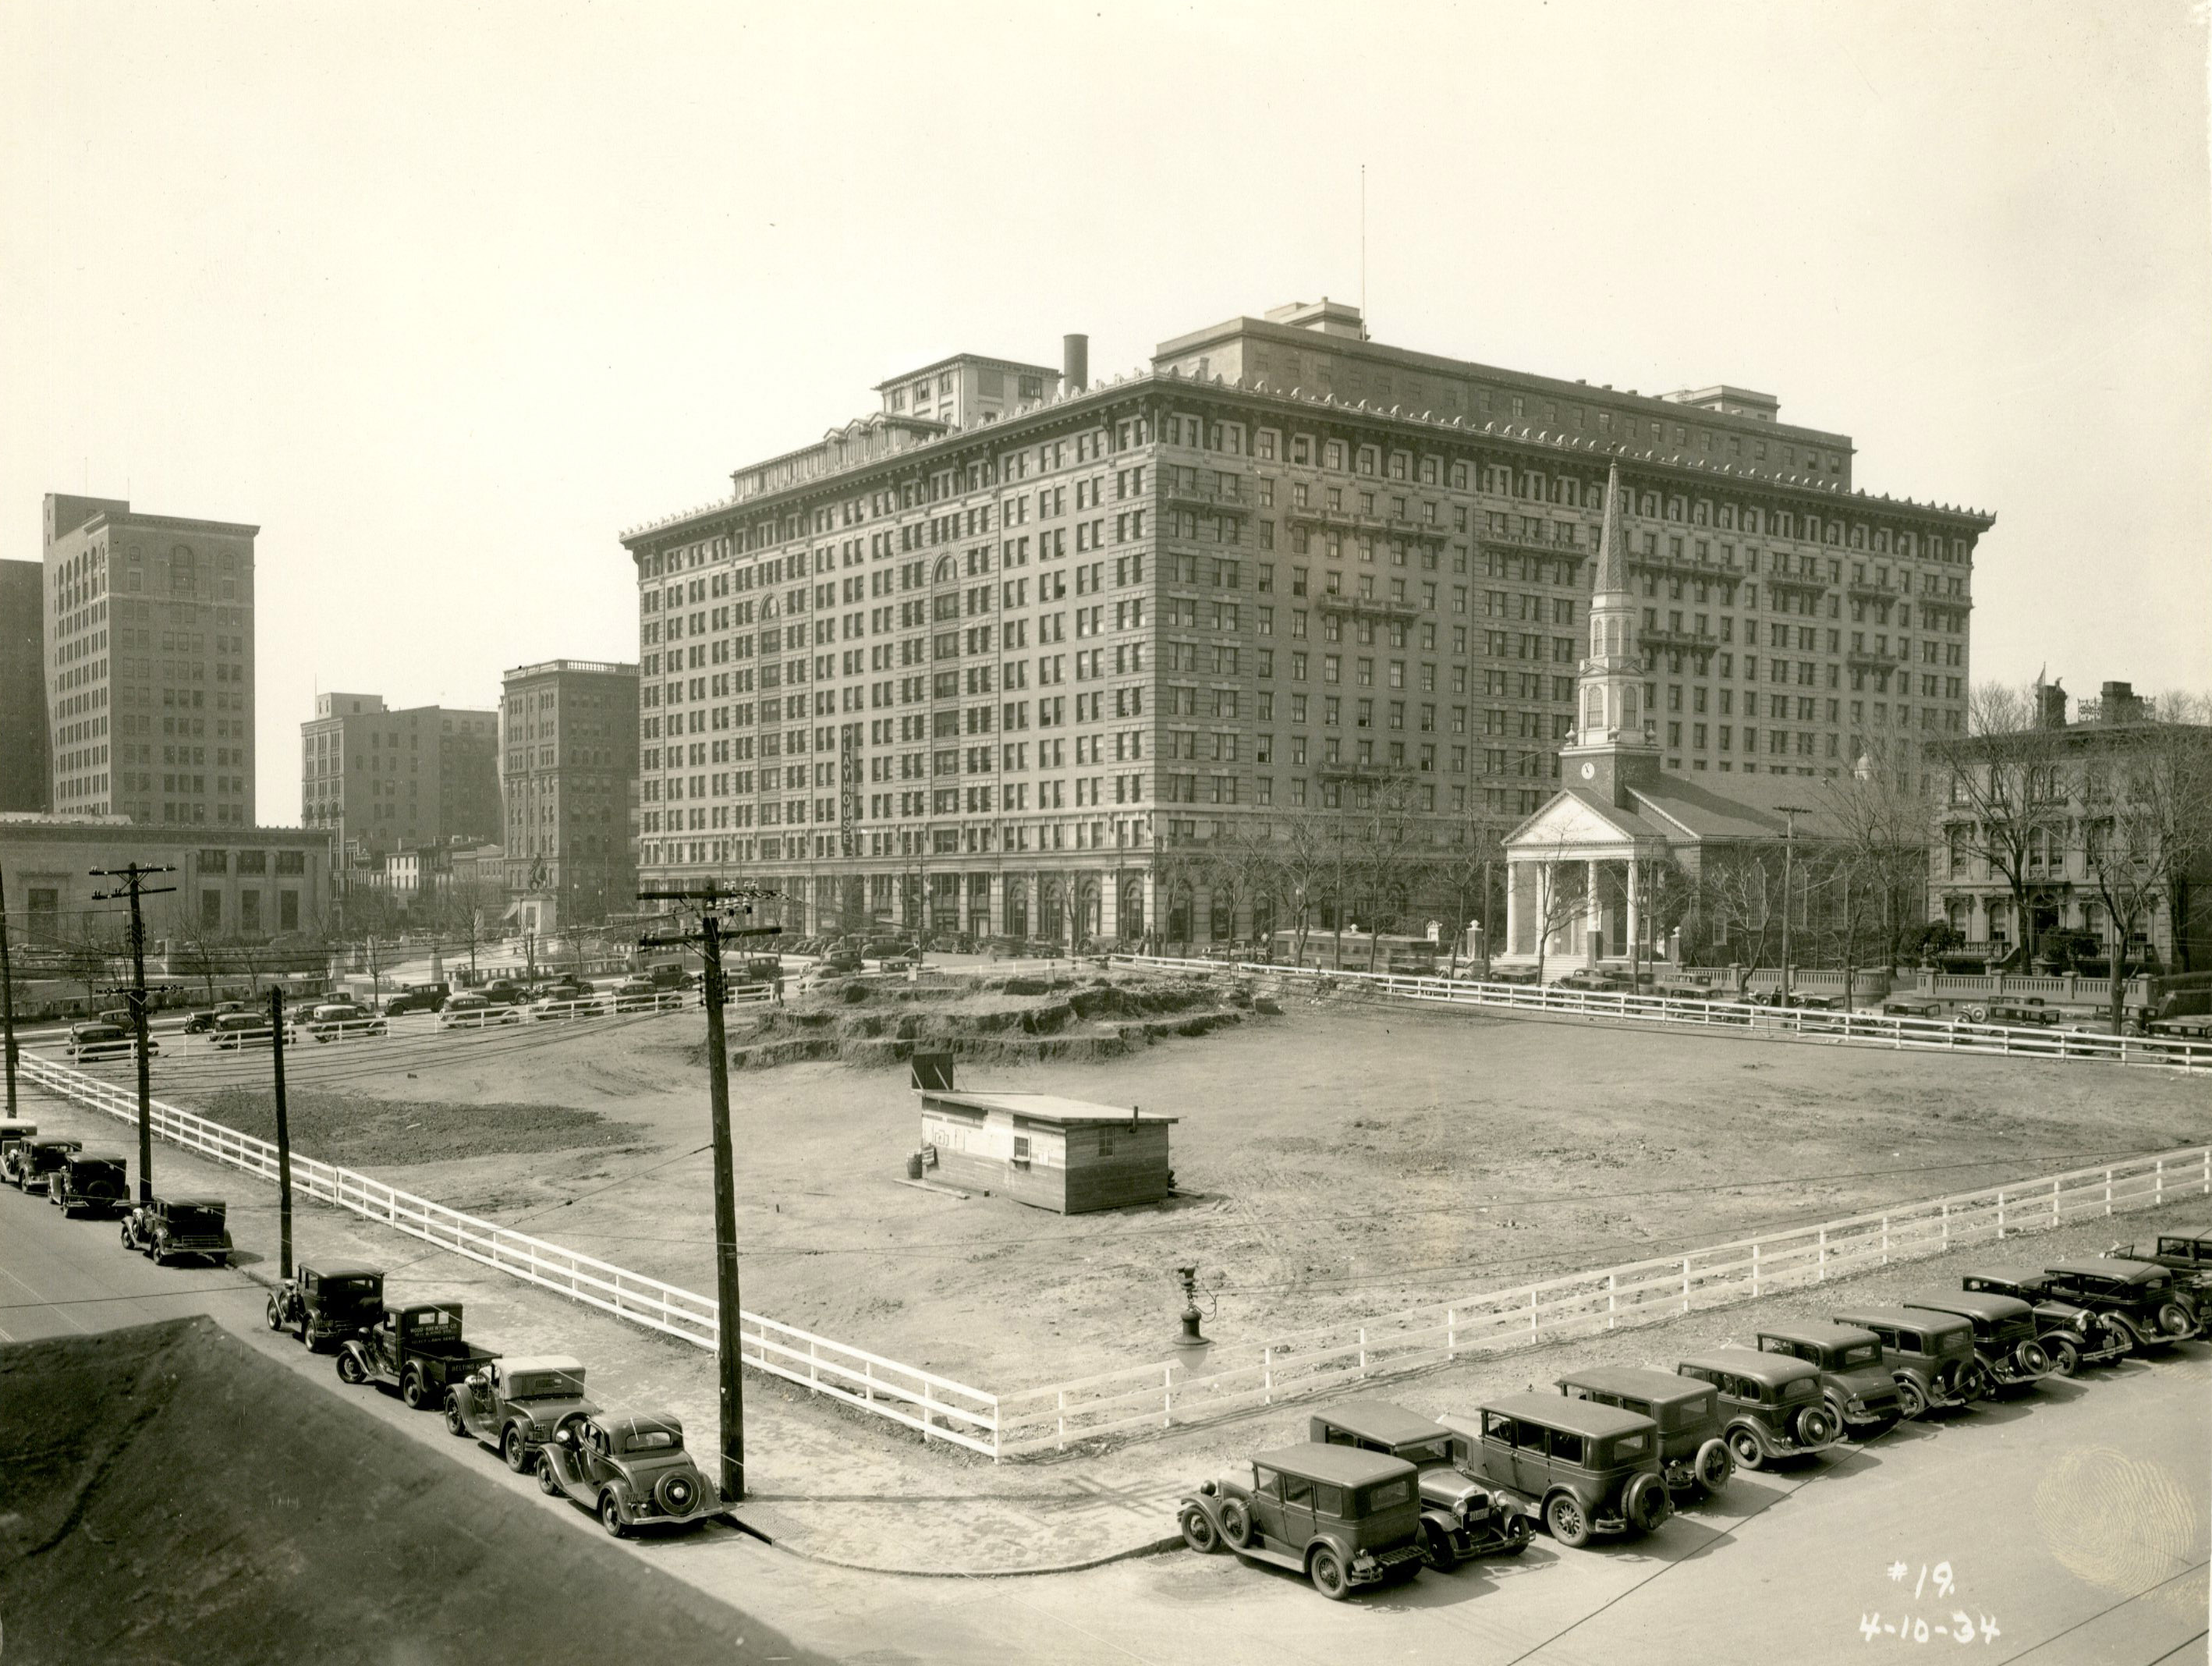 Picture of Hotel Dupont from 1934